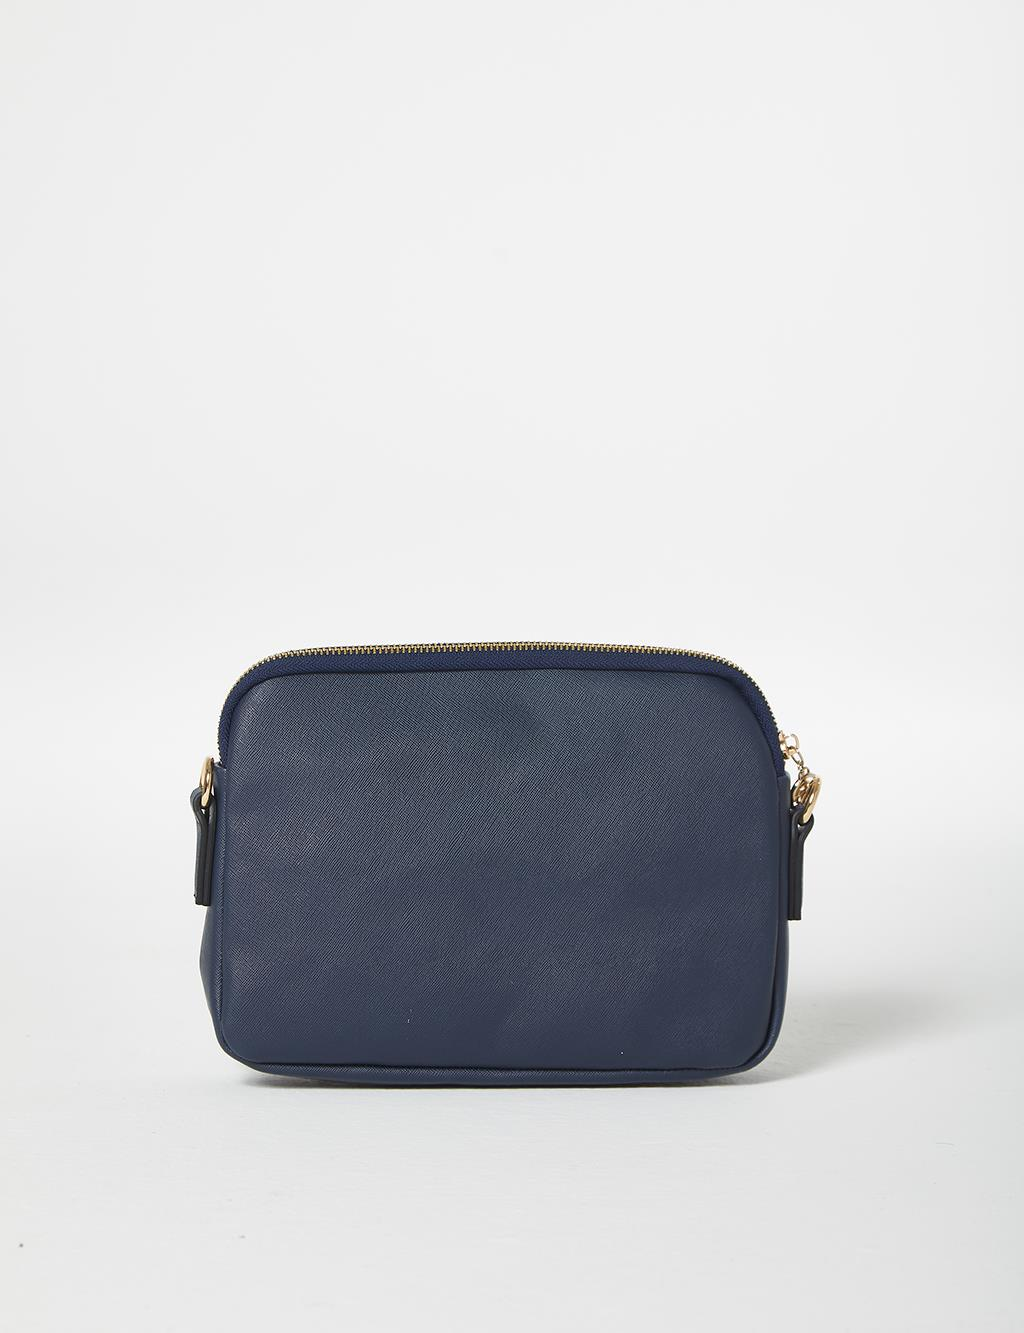 One-Eyed Elegant Shoulder Bag B21 CNT20 Navy